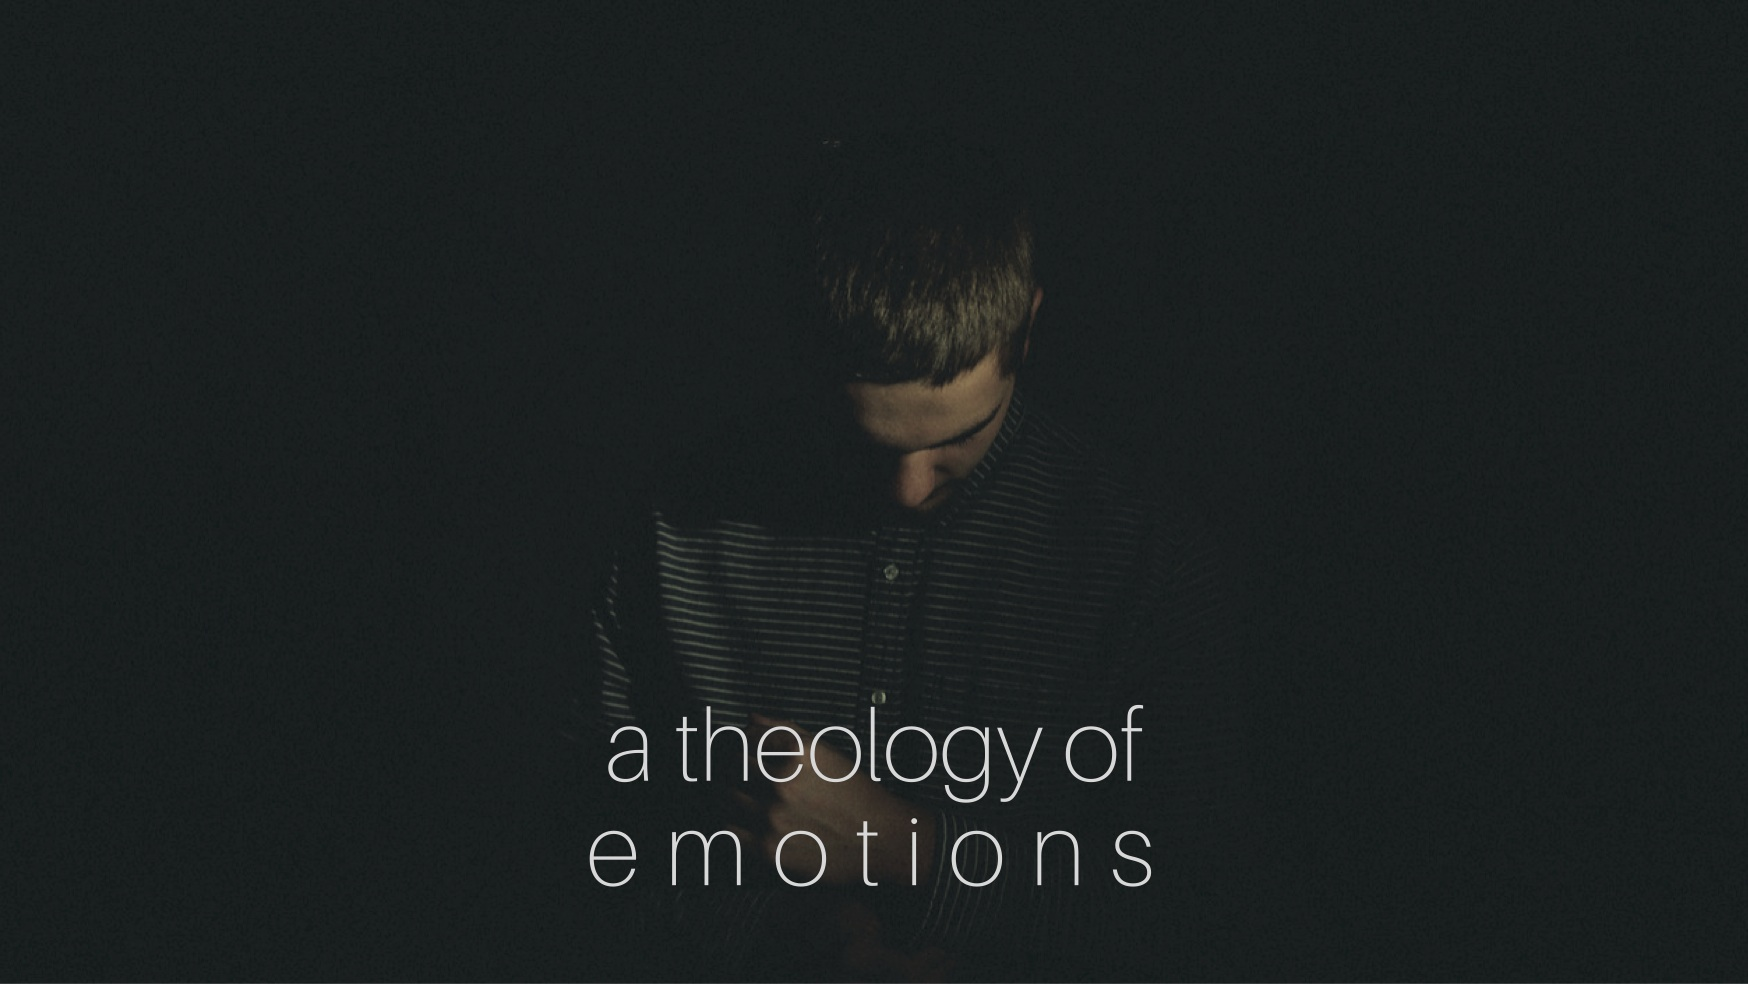 a theology of emotions